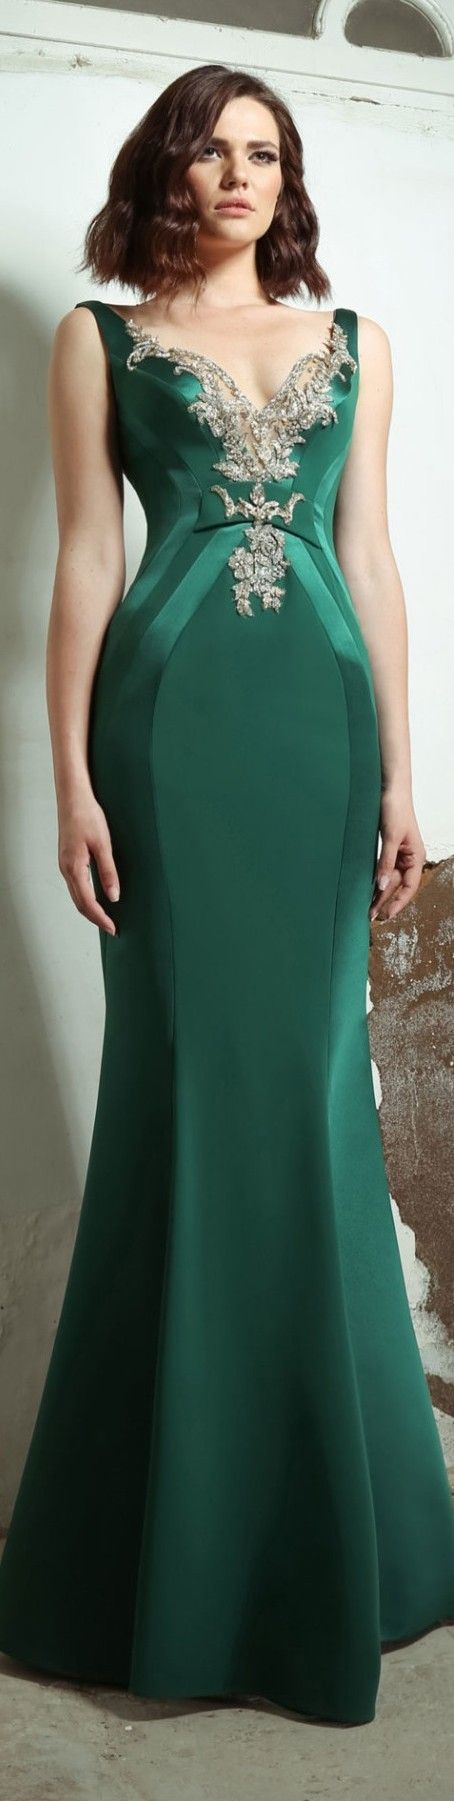 Green sleeveless evening dresses with v neck lines. Encrusted bead work on the upper bust line to accentuate that area. Slimming lines and figure conscience shapes on this evening gown make it a winner. Get more formal dress inspiration at www.dariuscordell.com